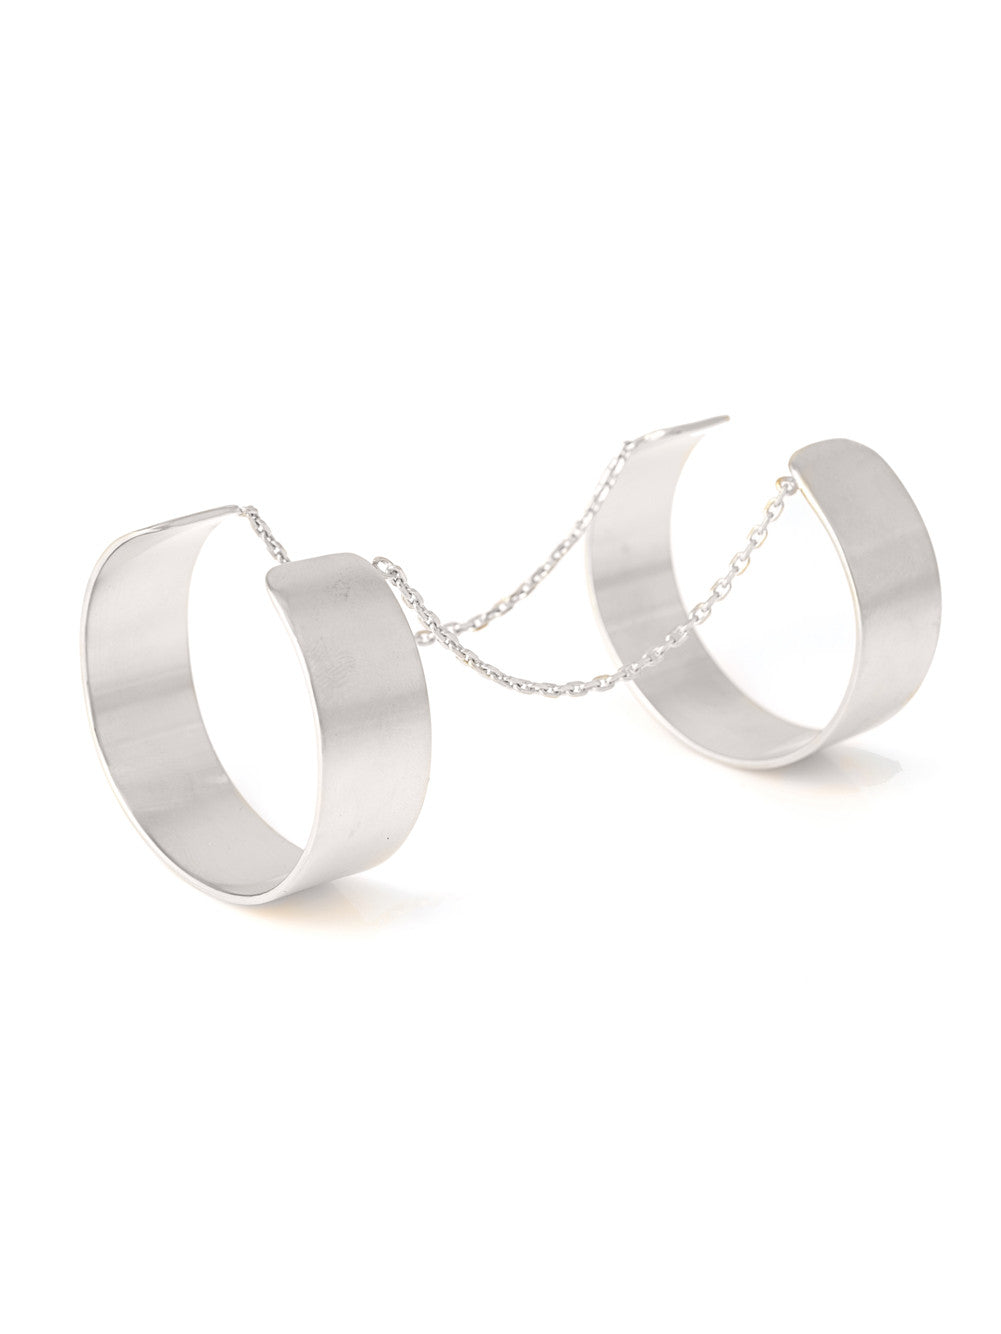 Bracelets Anarchy Silver Double Cuff Vanessa Mooney